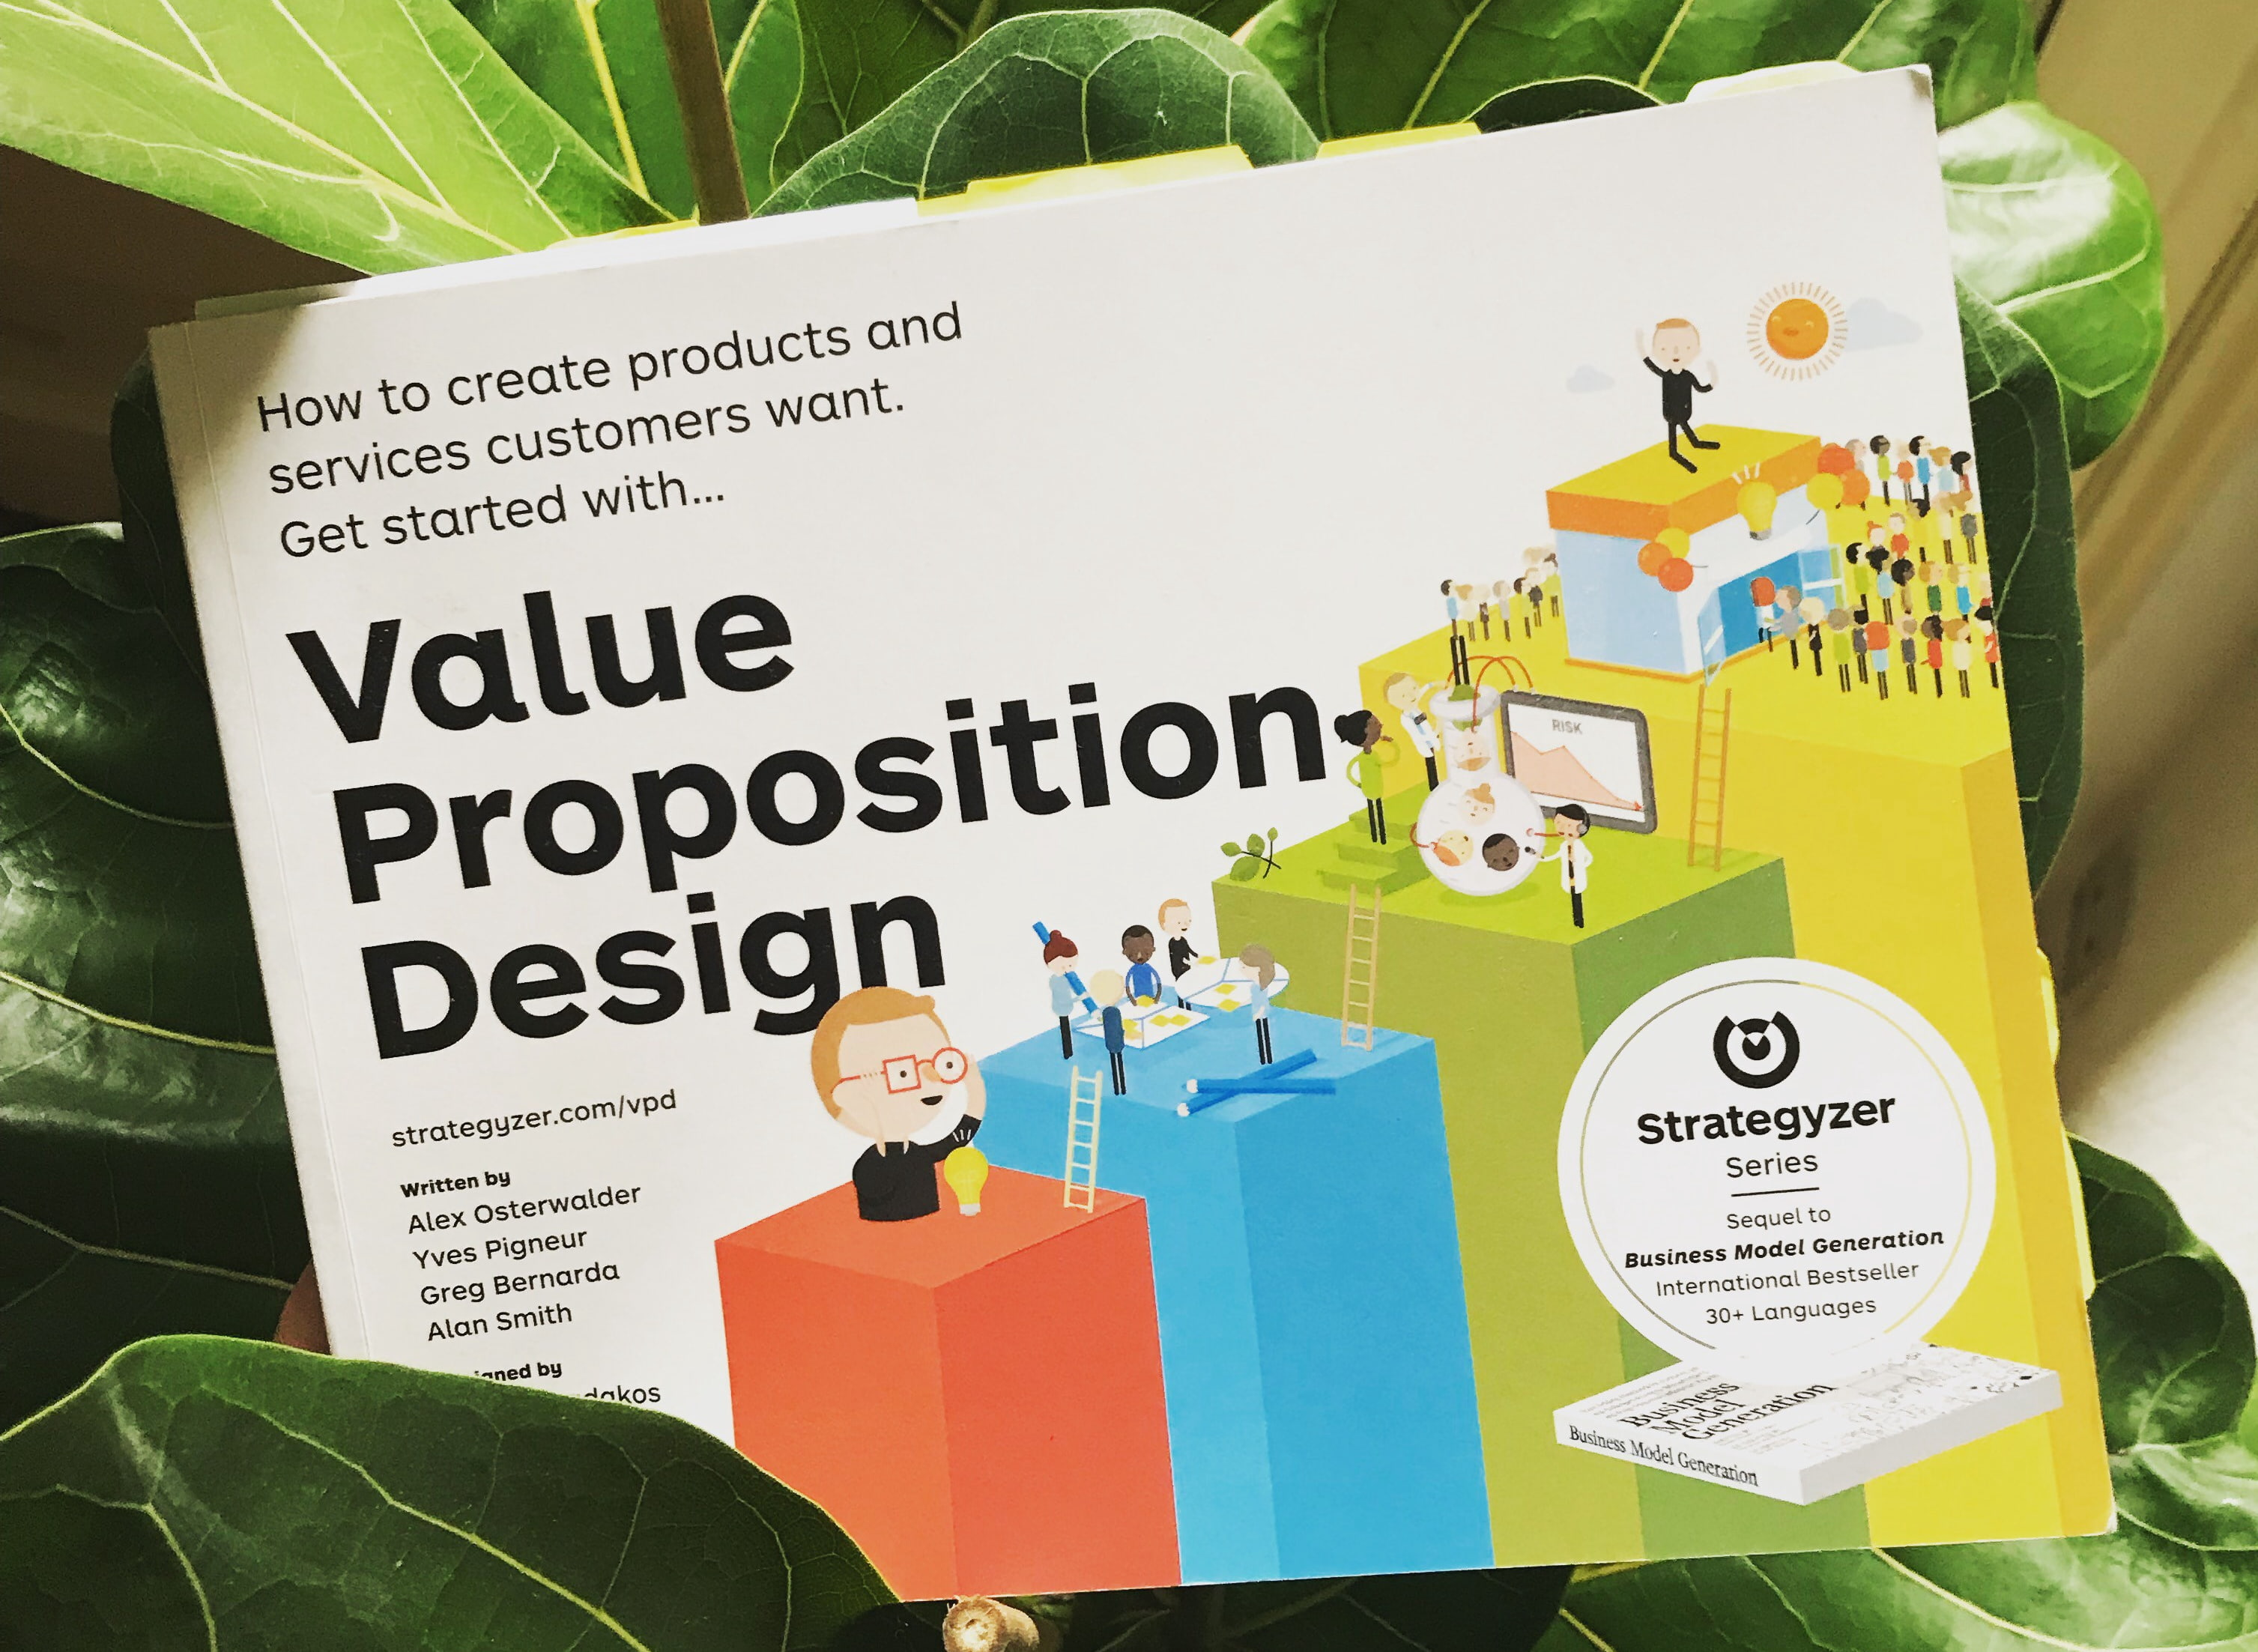 A picture of the Value Proposition Design book by Alexander Osterwalder for Strategizer